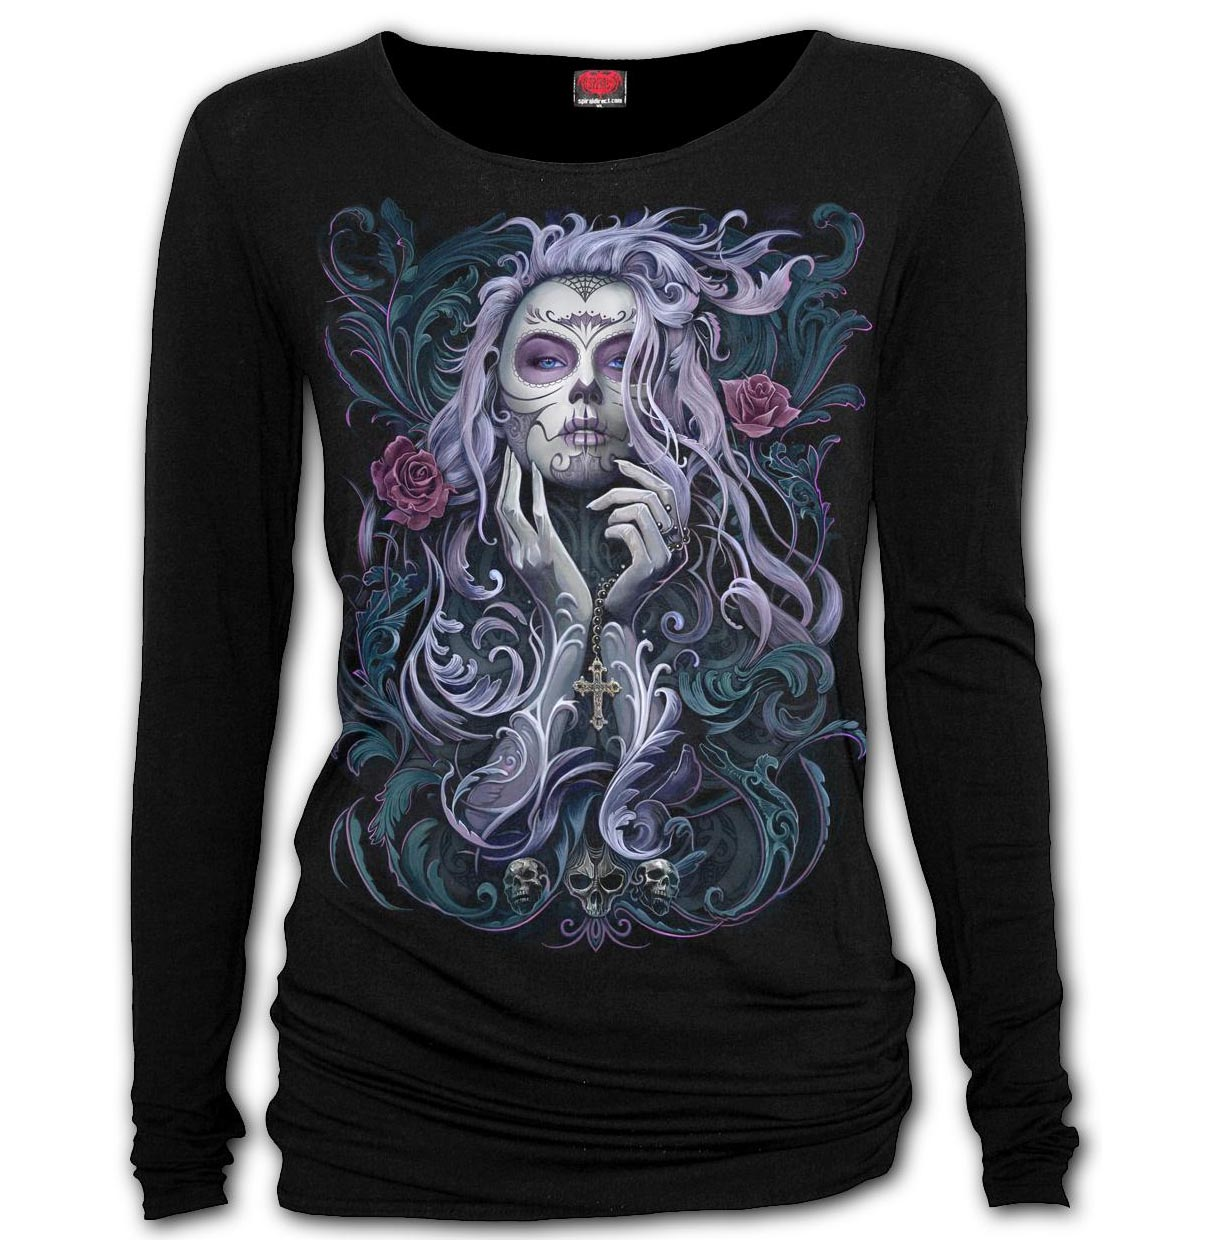 SPIRAL-Ladies-Black-Goth-ROCOCO-SKULL-Day-of-The-Dead-L-Sleeve-Top-All-Sizes thumbnail 3